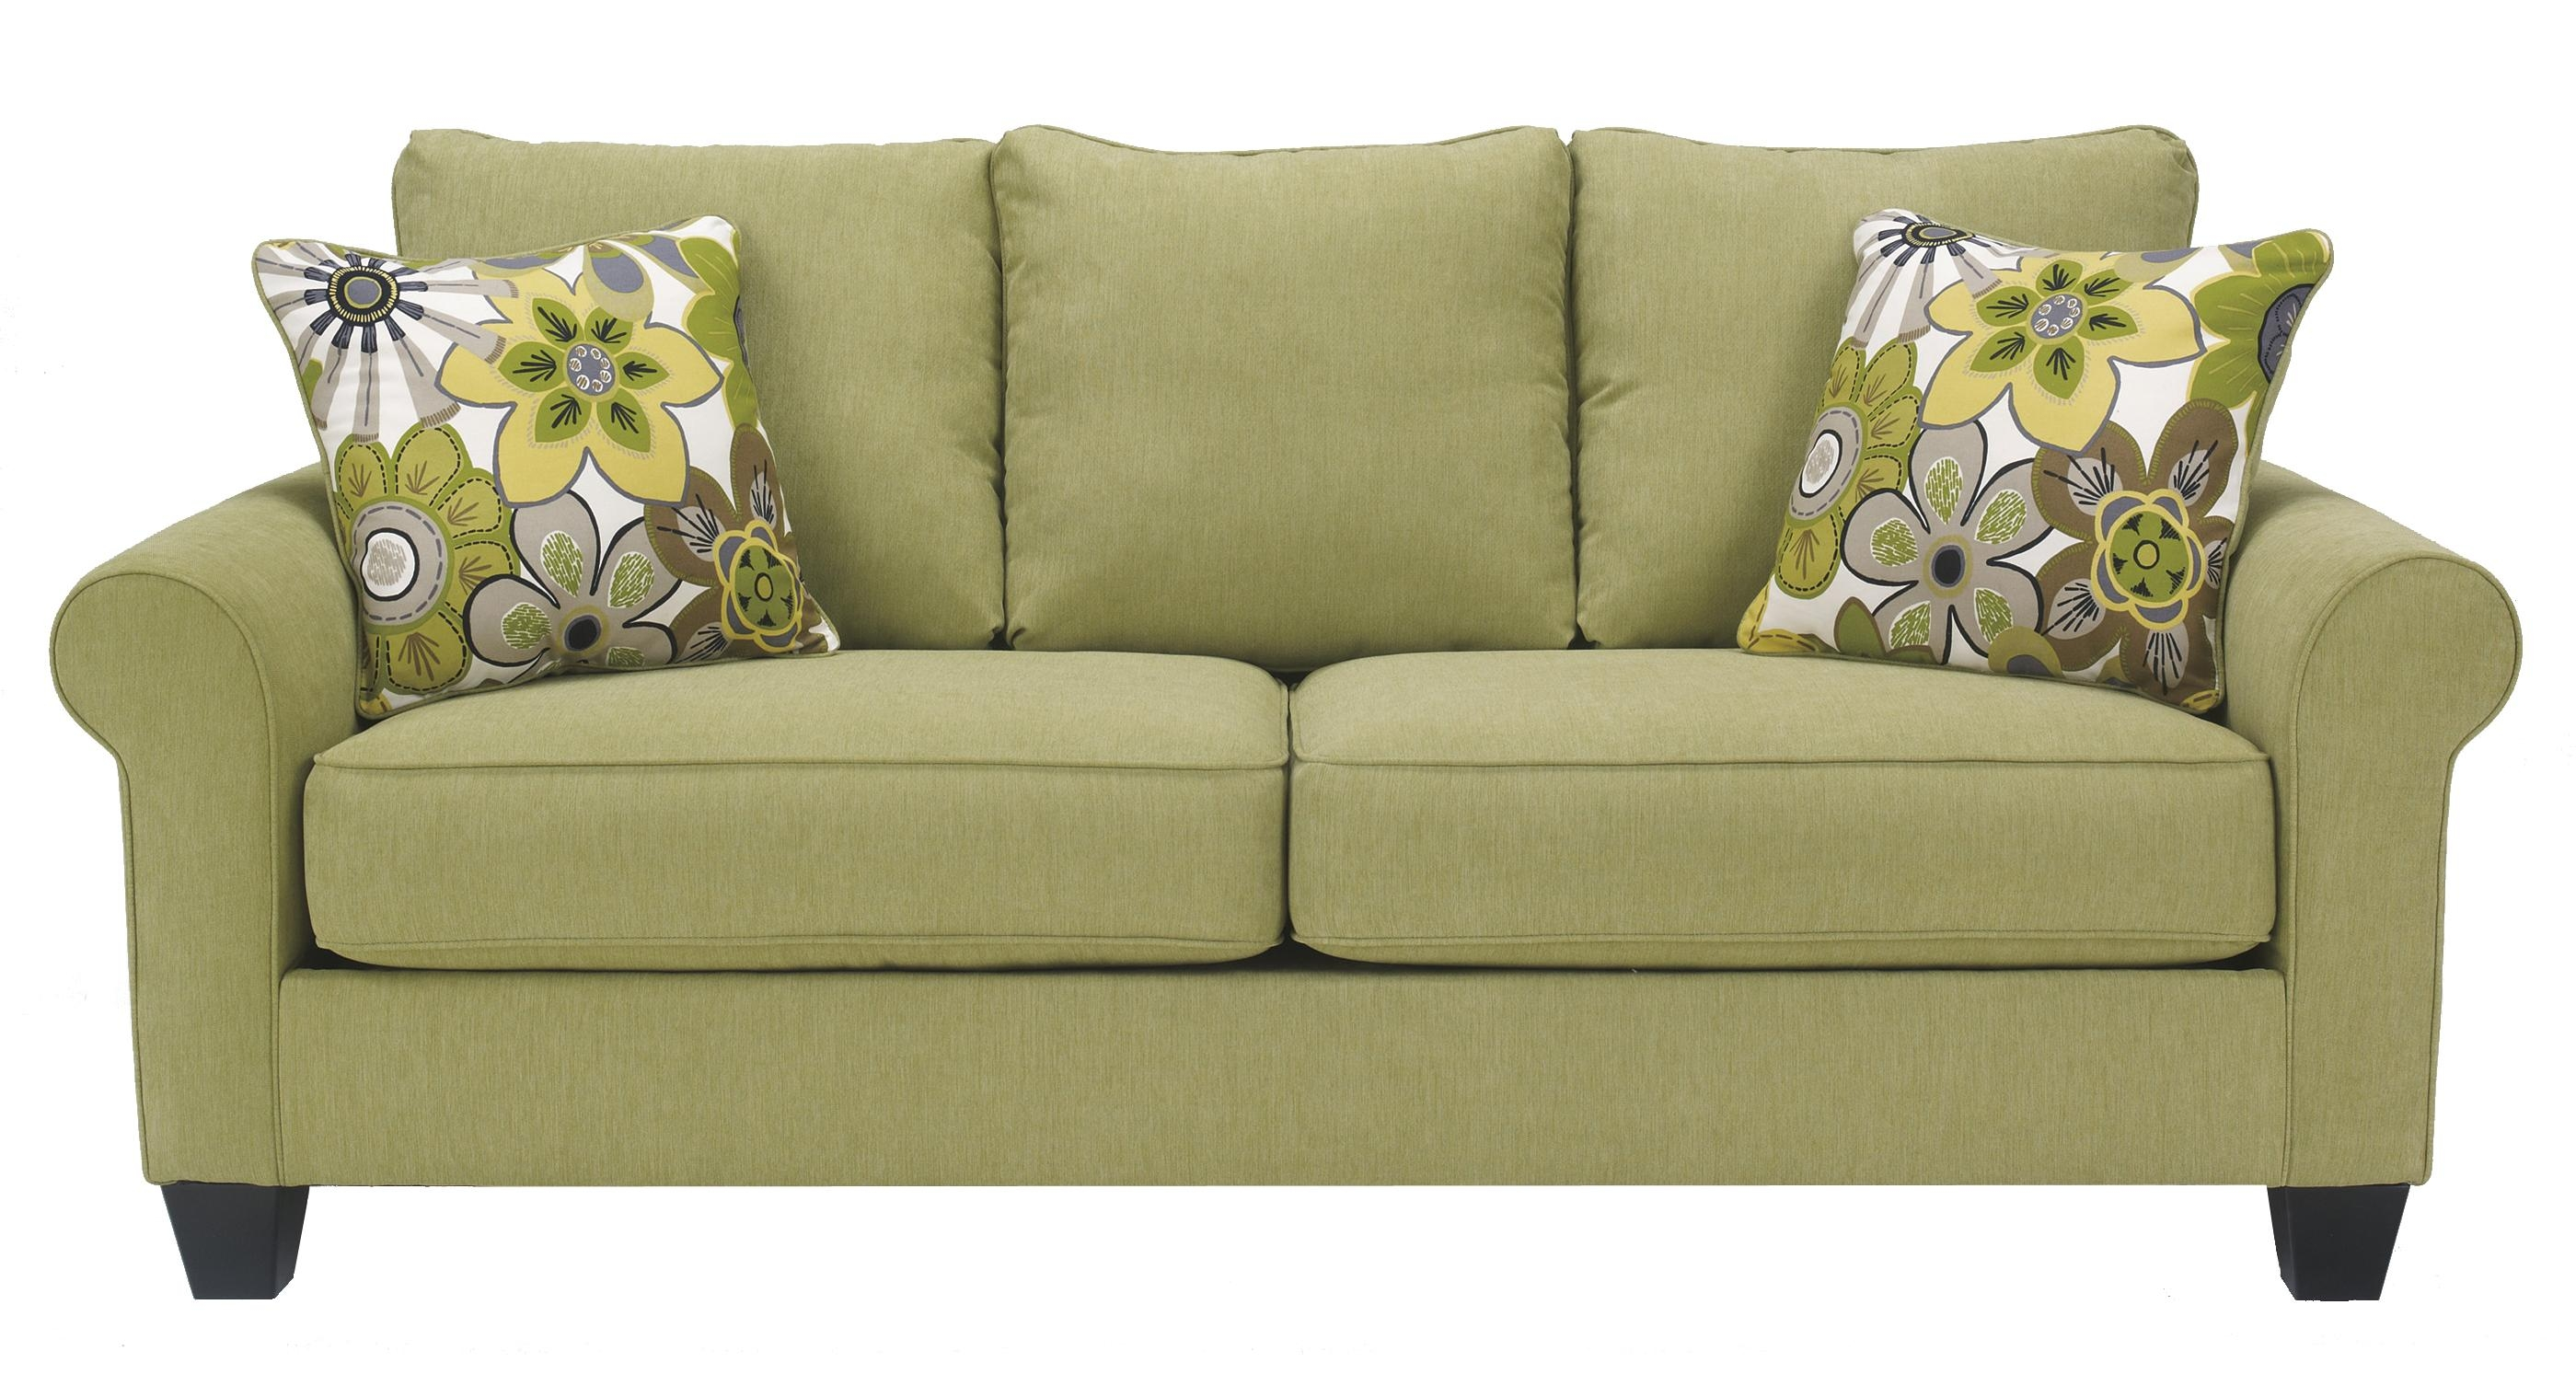 Decor Fascinating Benchcraft Sofa With Luxury Shapes For Living In Berkline Sofa Recliner (#9 of 12)